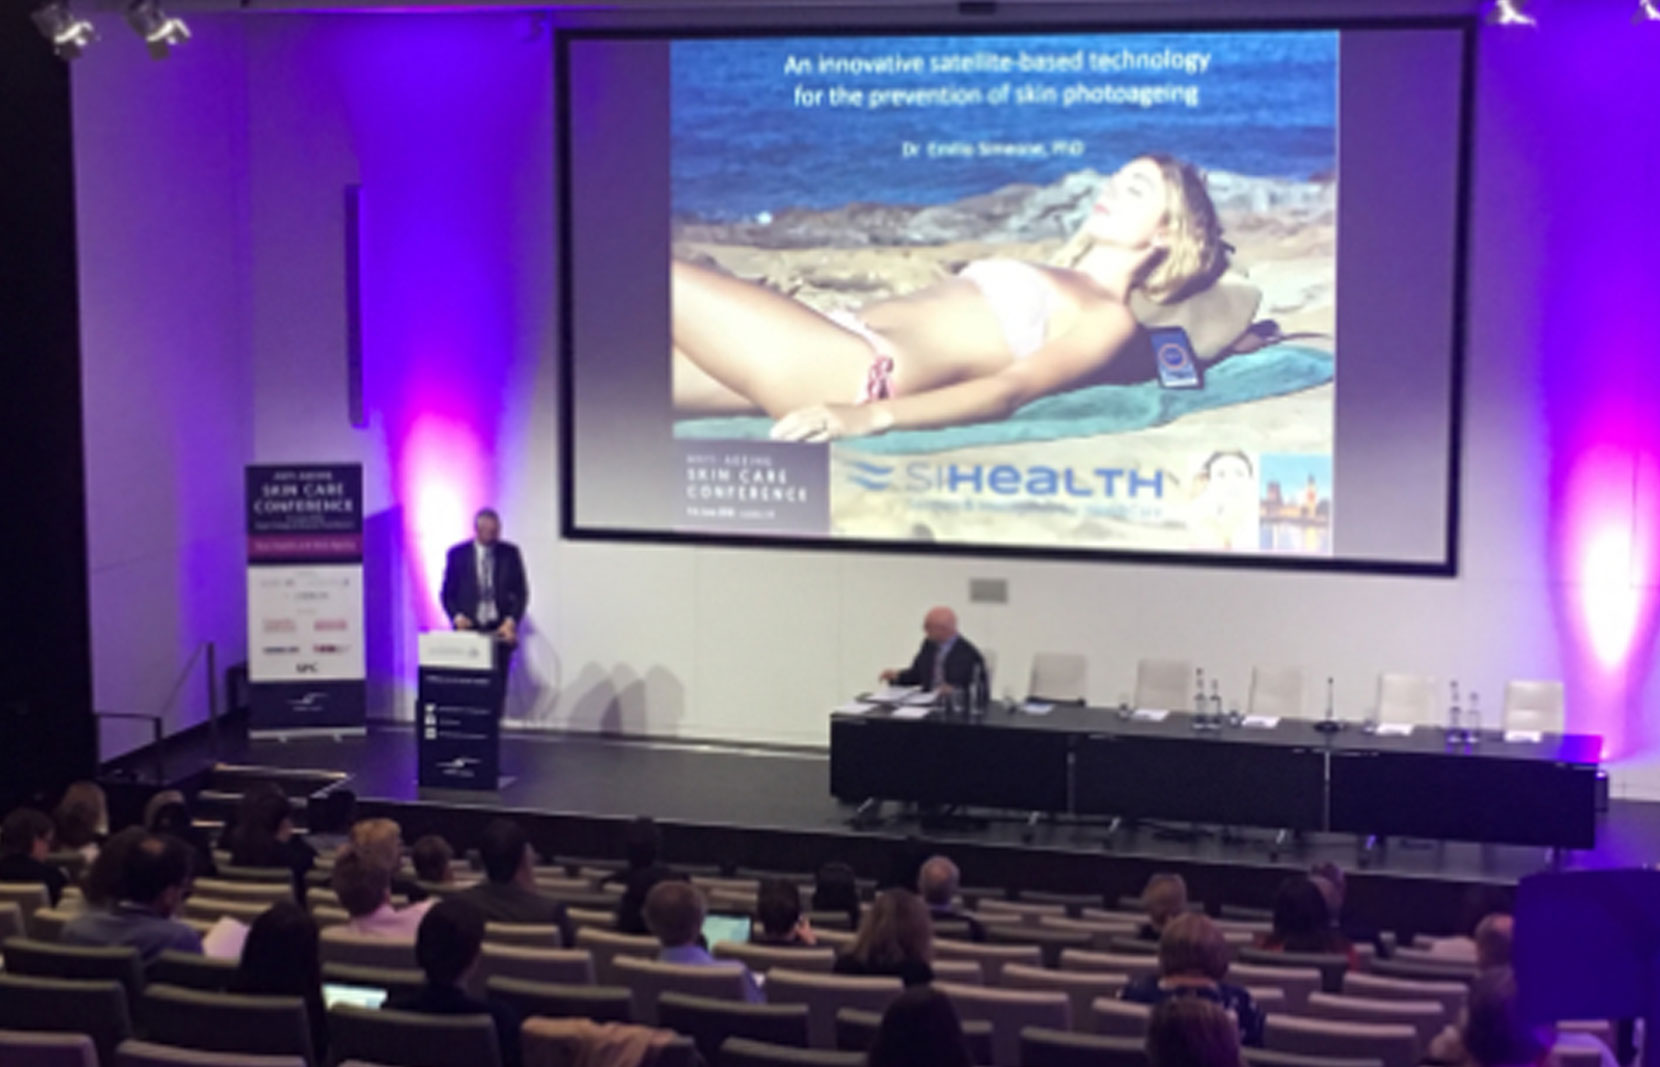 siHealth at the 6th Anti-Ageing Skin Care Conference in London